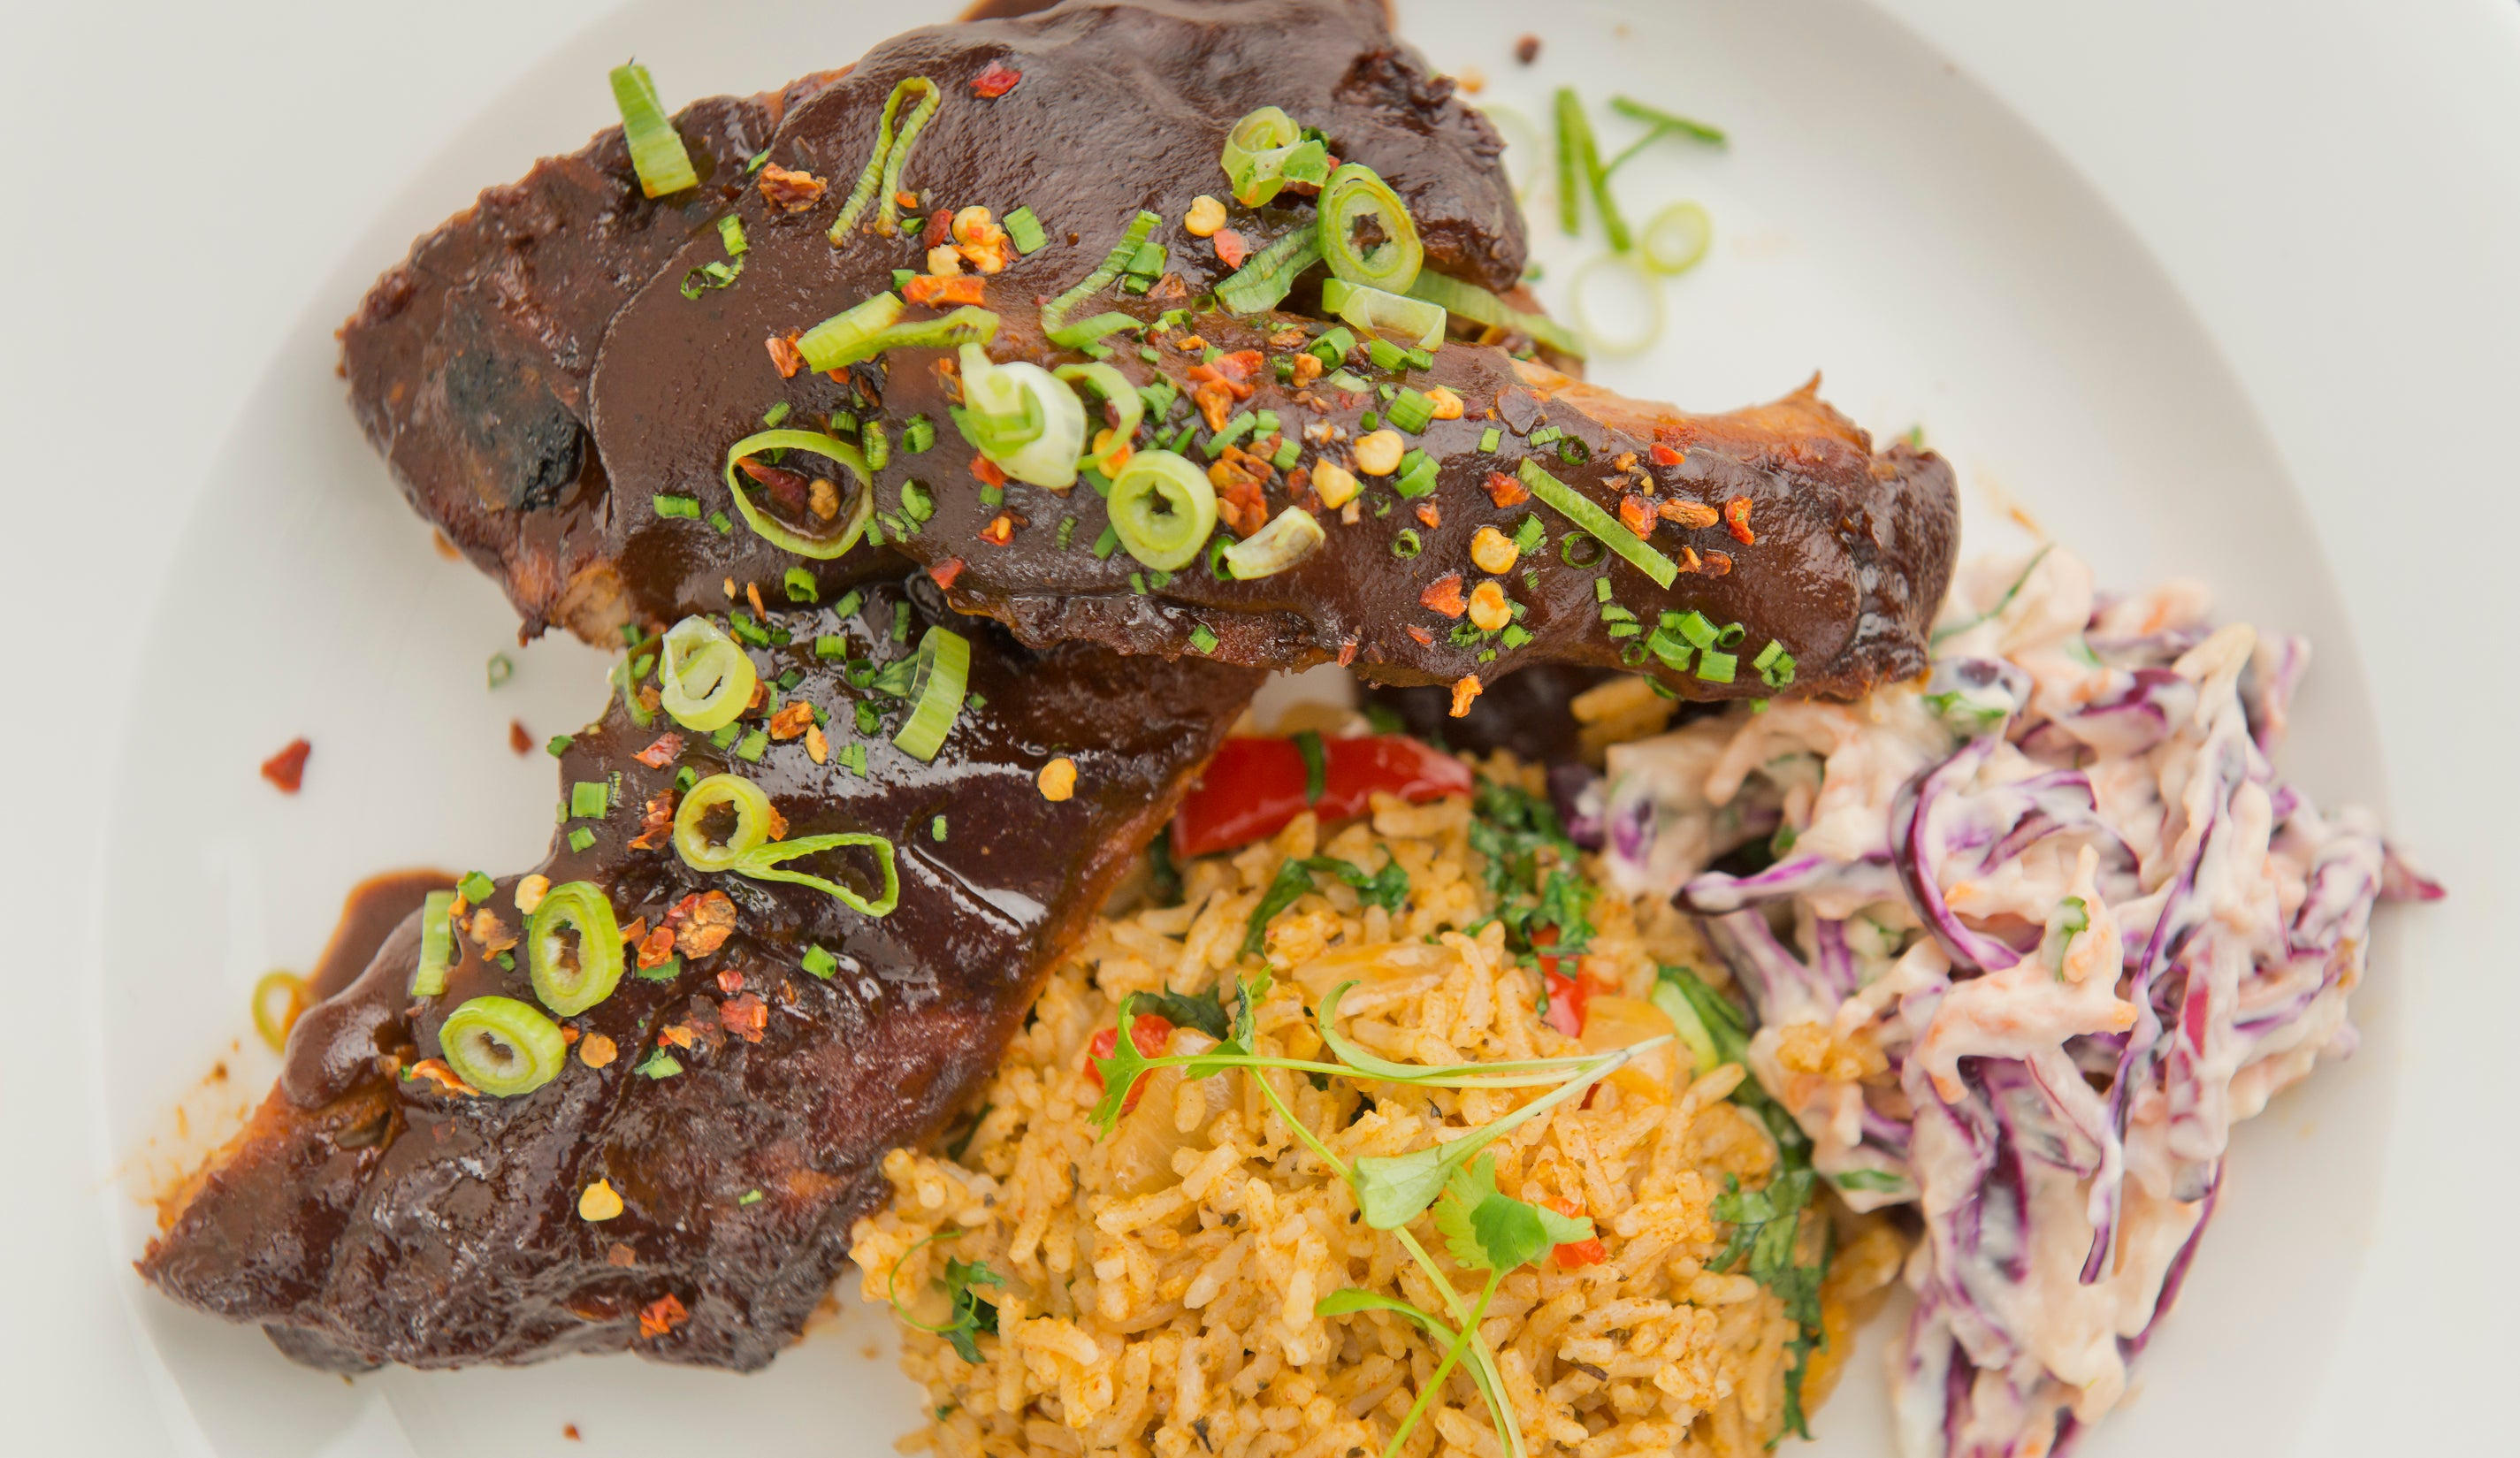 BBQ pork ribs with spicy rice & coleslaw